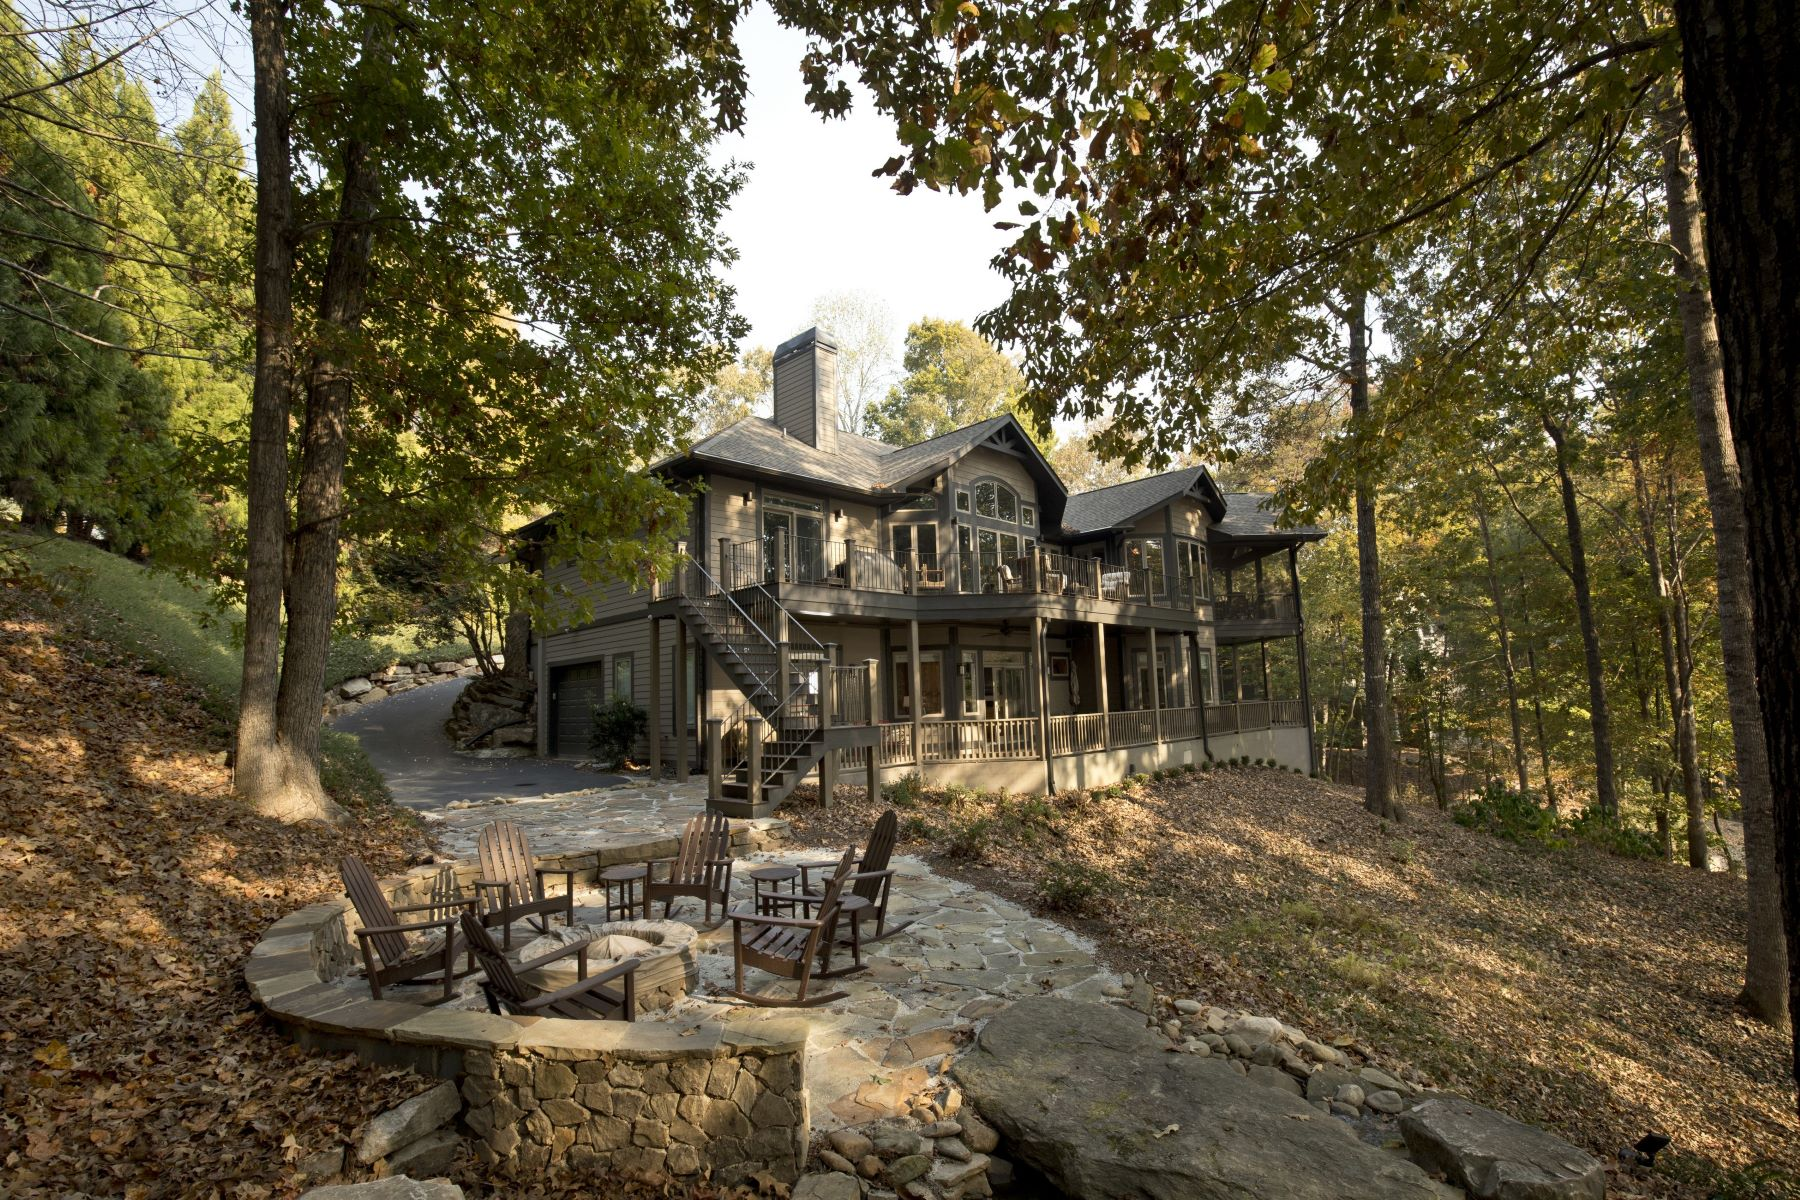 Single Family Home for Sale at Better Than New! Redesigned Lakefront Home 602 Wind Flower Drive The Cliffs At Keowee Vineyards, Sunset, South Carolina, 29685 United States